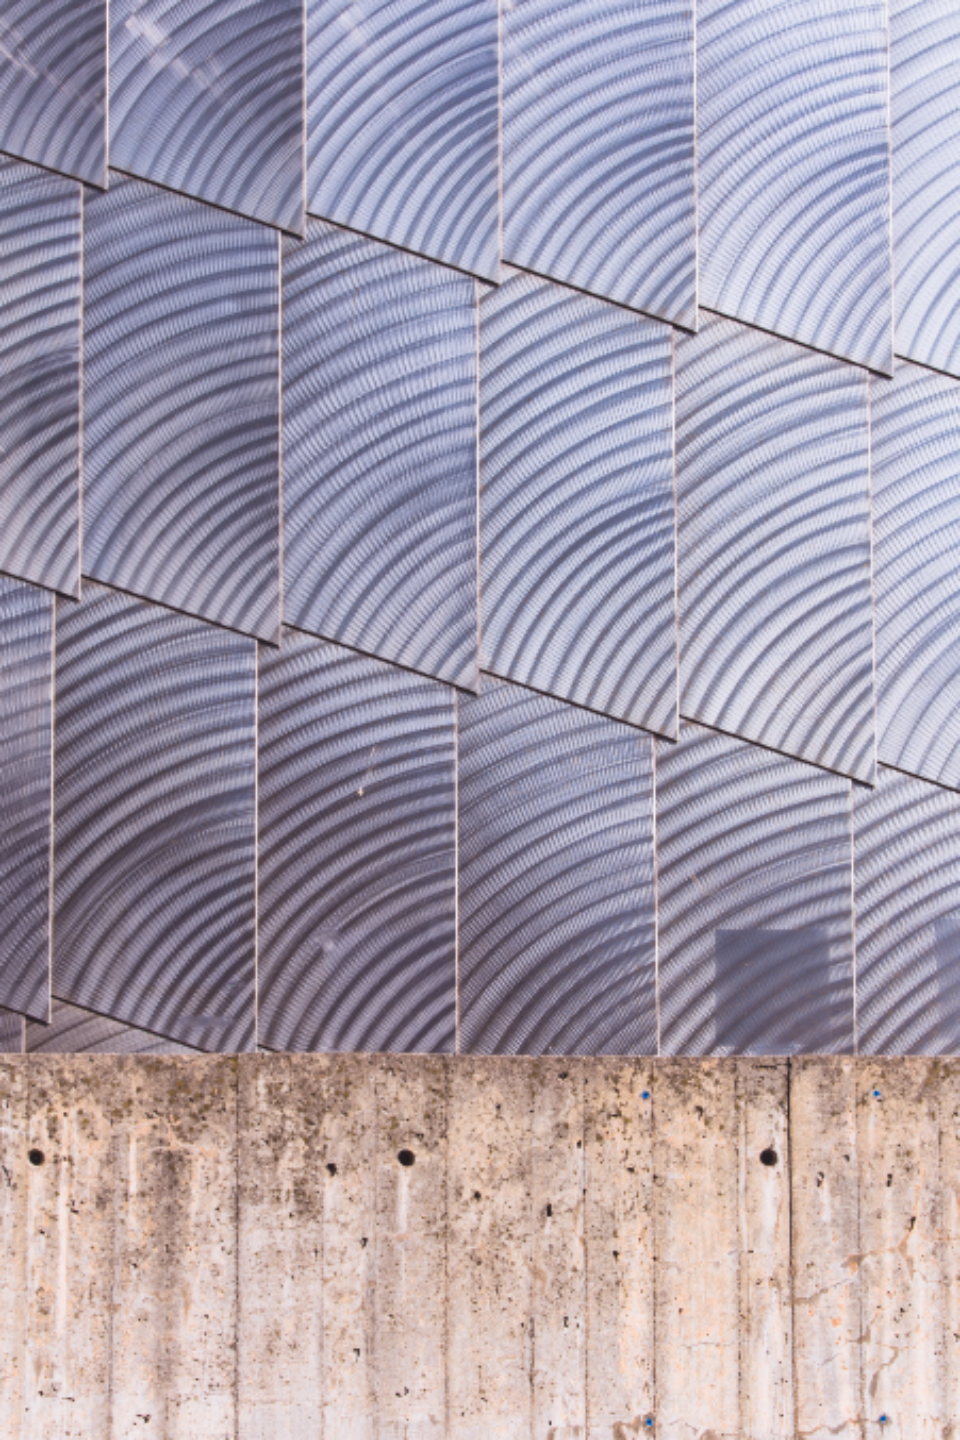 architecture abstract structure building city modern design exterior futuristic background wall concrete steel